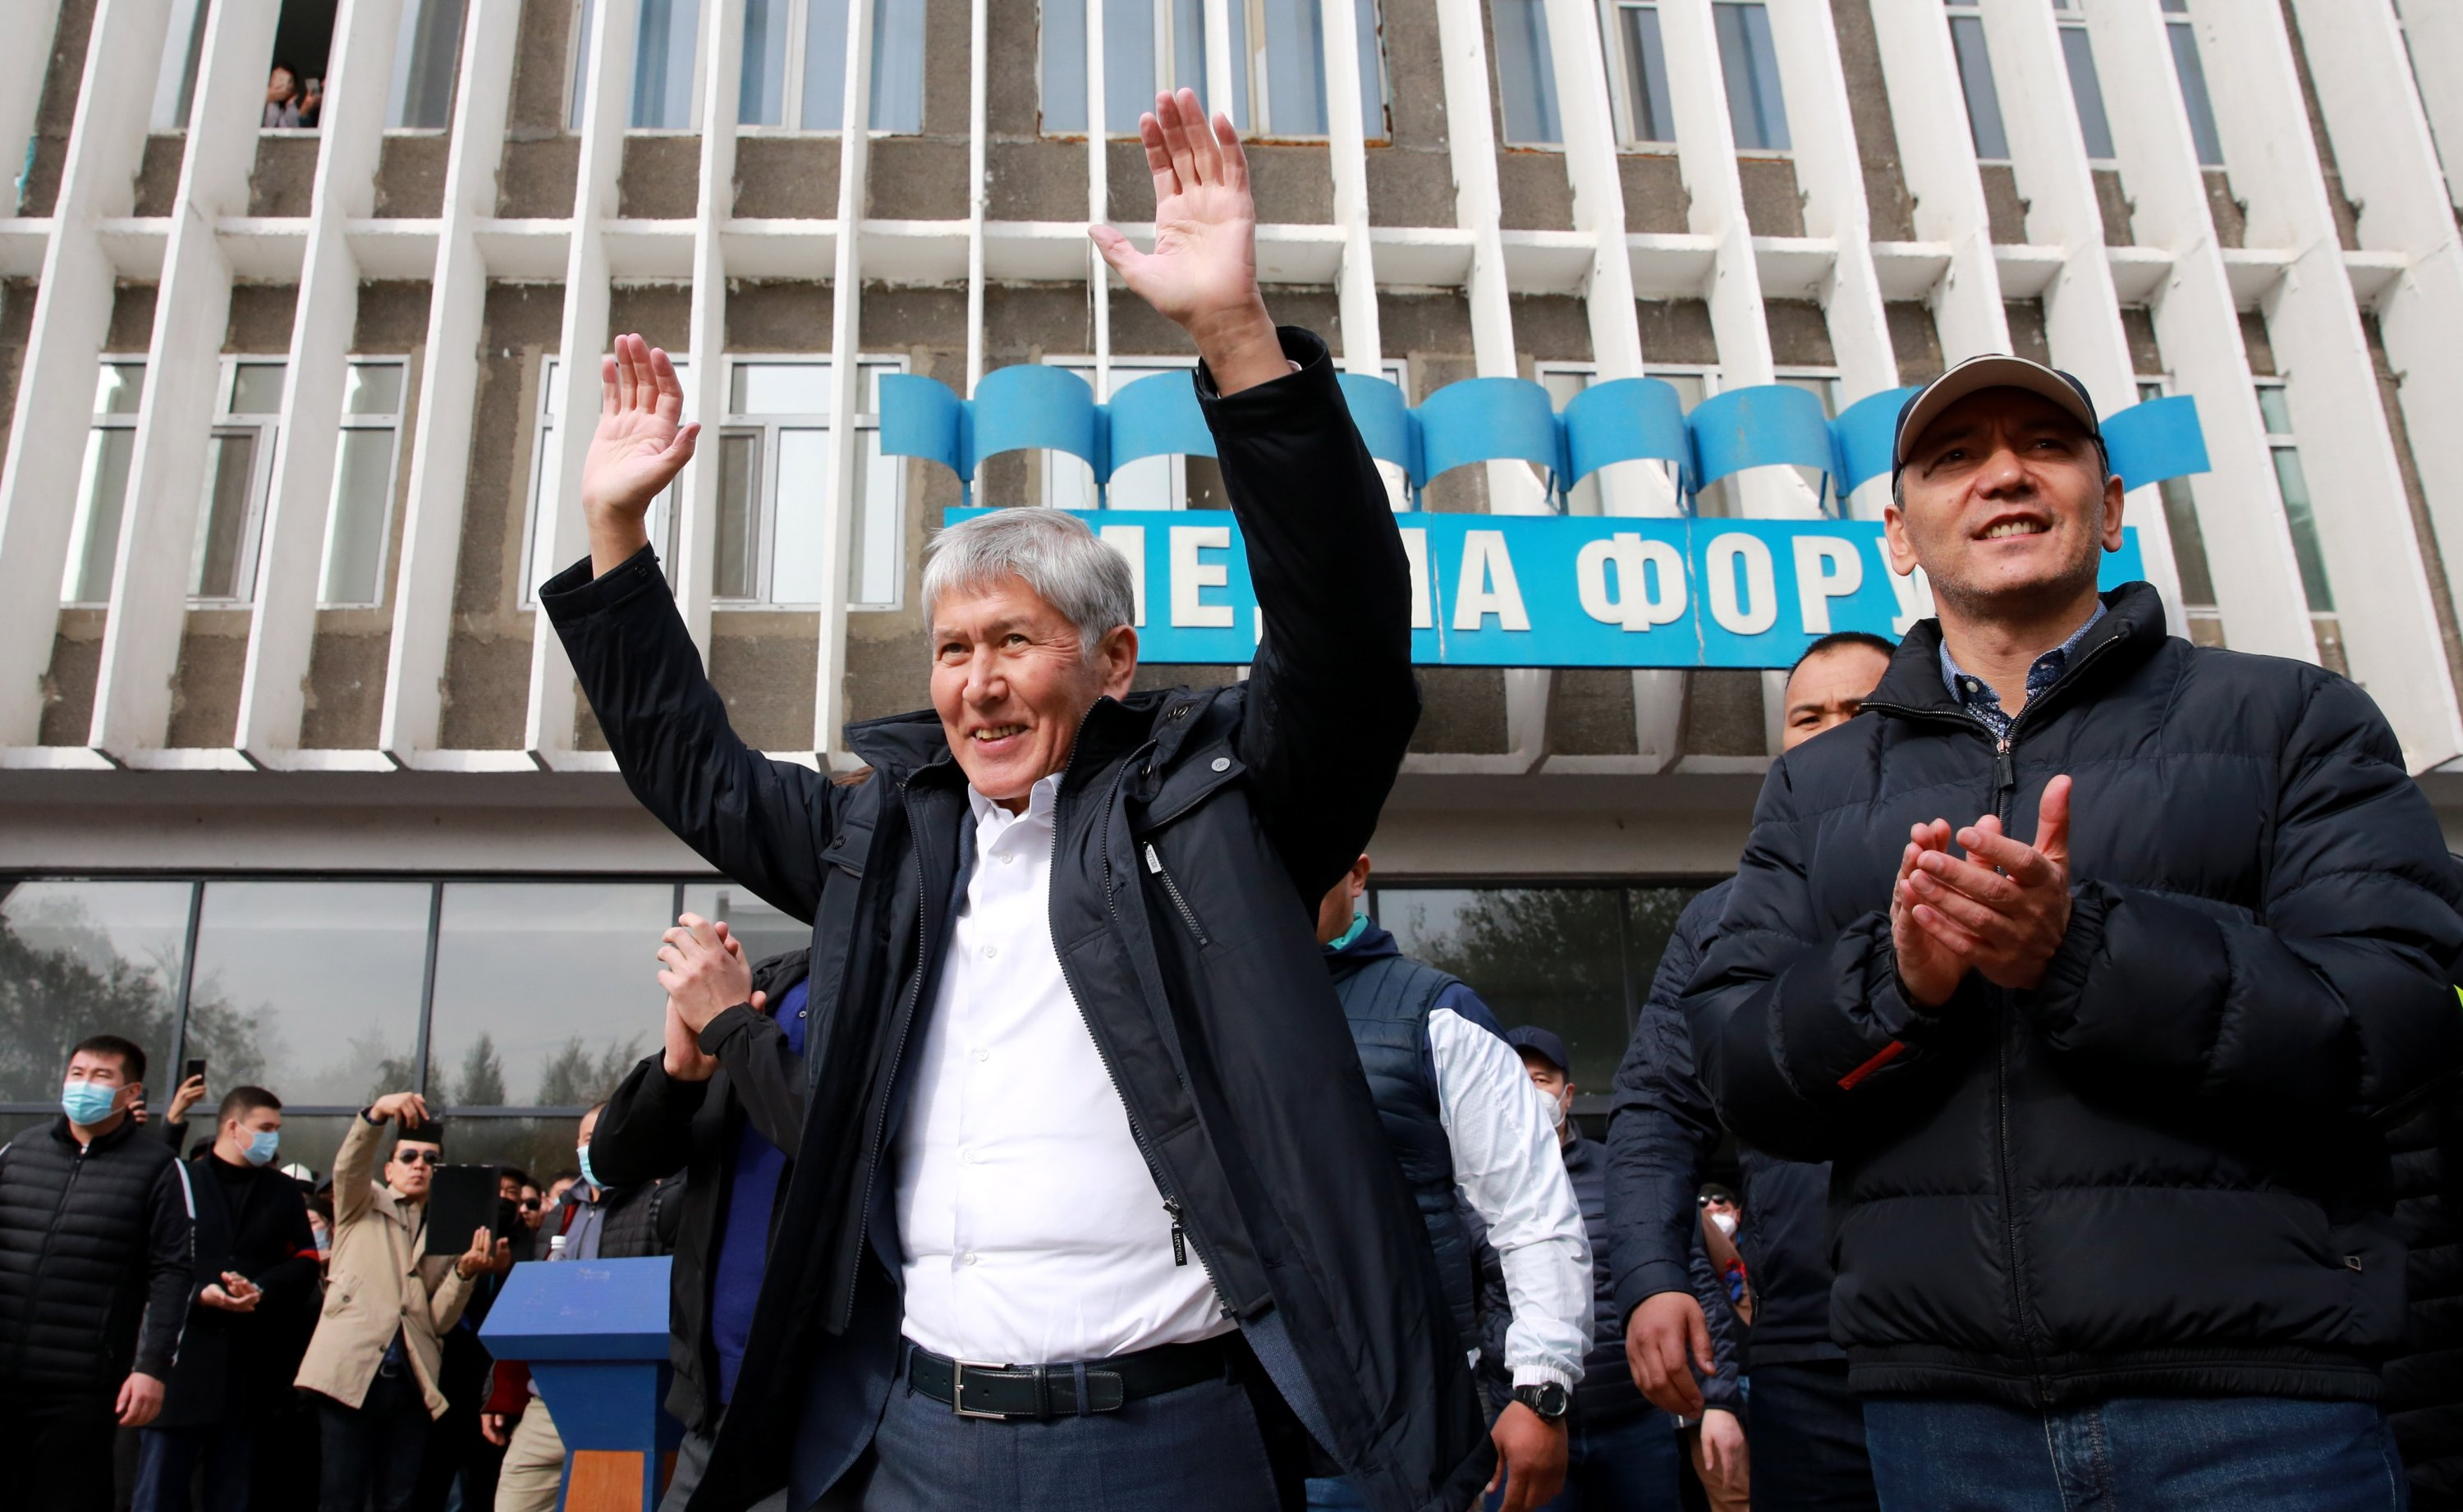 Kyrgyzstan's former President Almazbek Atambayev (C) during a rally of his supporters outside the offices of Media Forum in Bishkek, Kyrgyzstan Oct. 09, 2020. (EPA Photo)